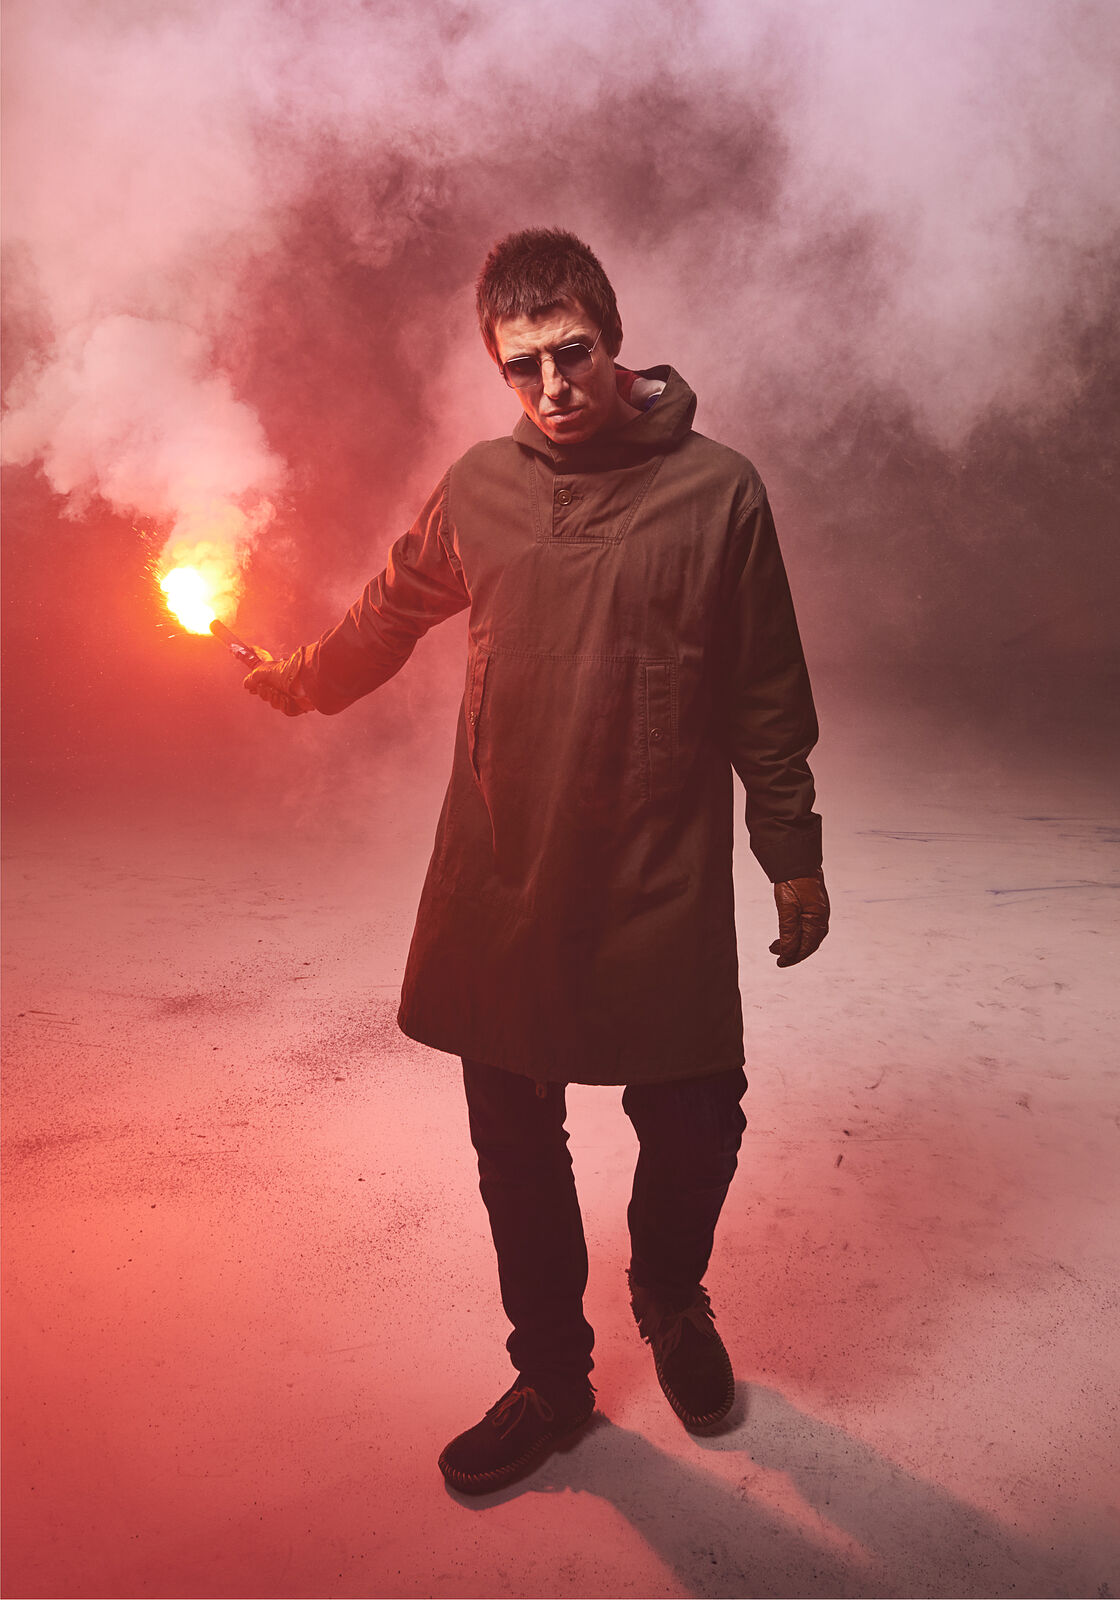 Liam Gallagher Limited Edition Fine Art Print